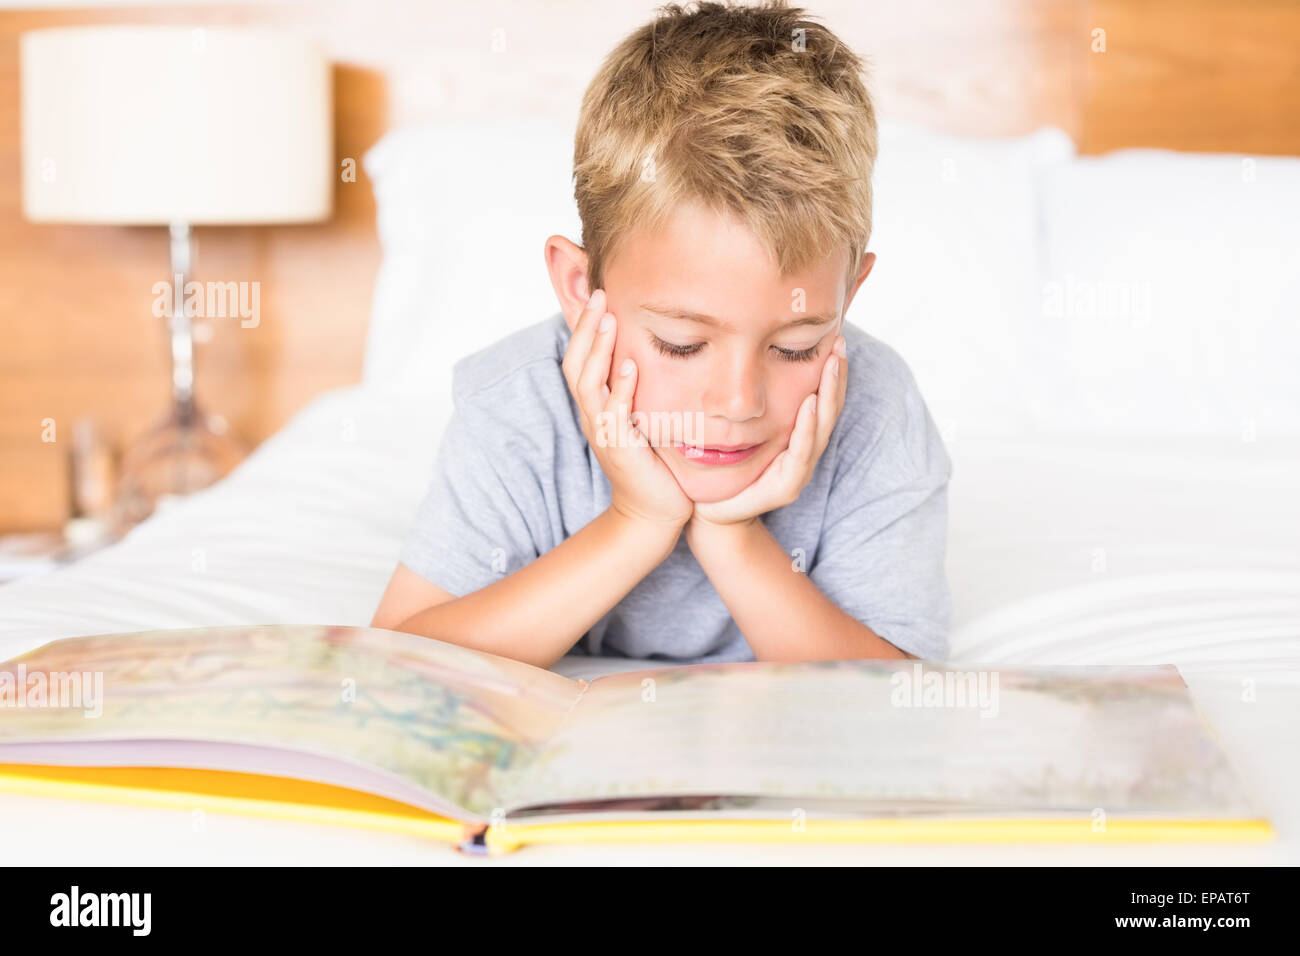 Happy blonde boy lying on bed reading a storybook - Stock Image